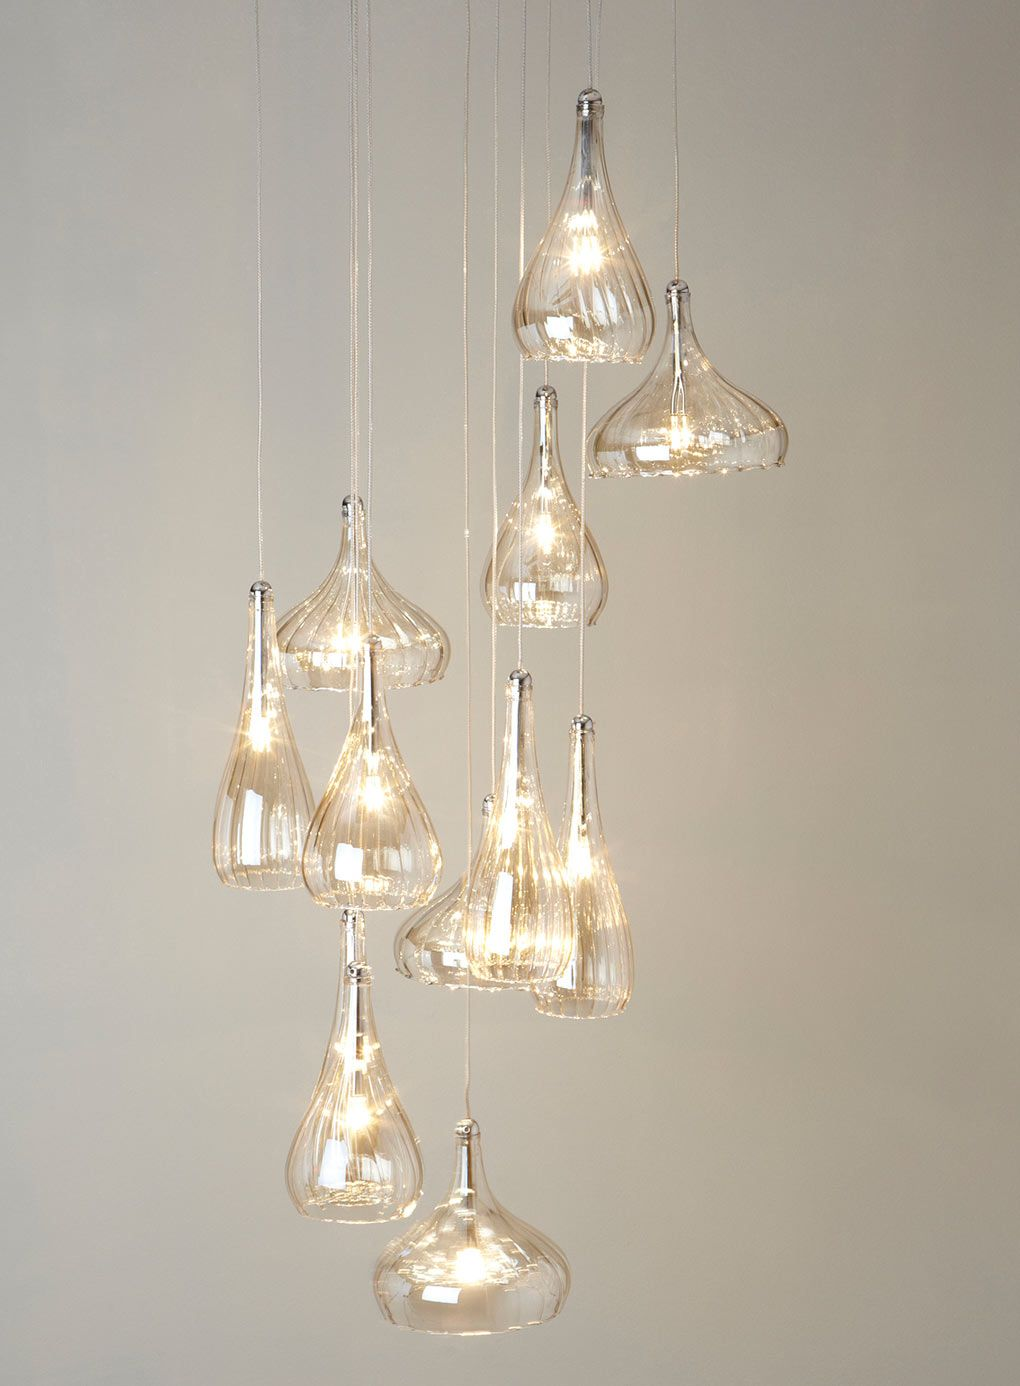 Carrara 12 Light Ceiling Pendant - ceiling lights - Lighting Event - Home,  Lighting &